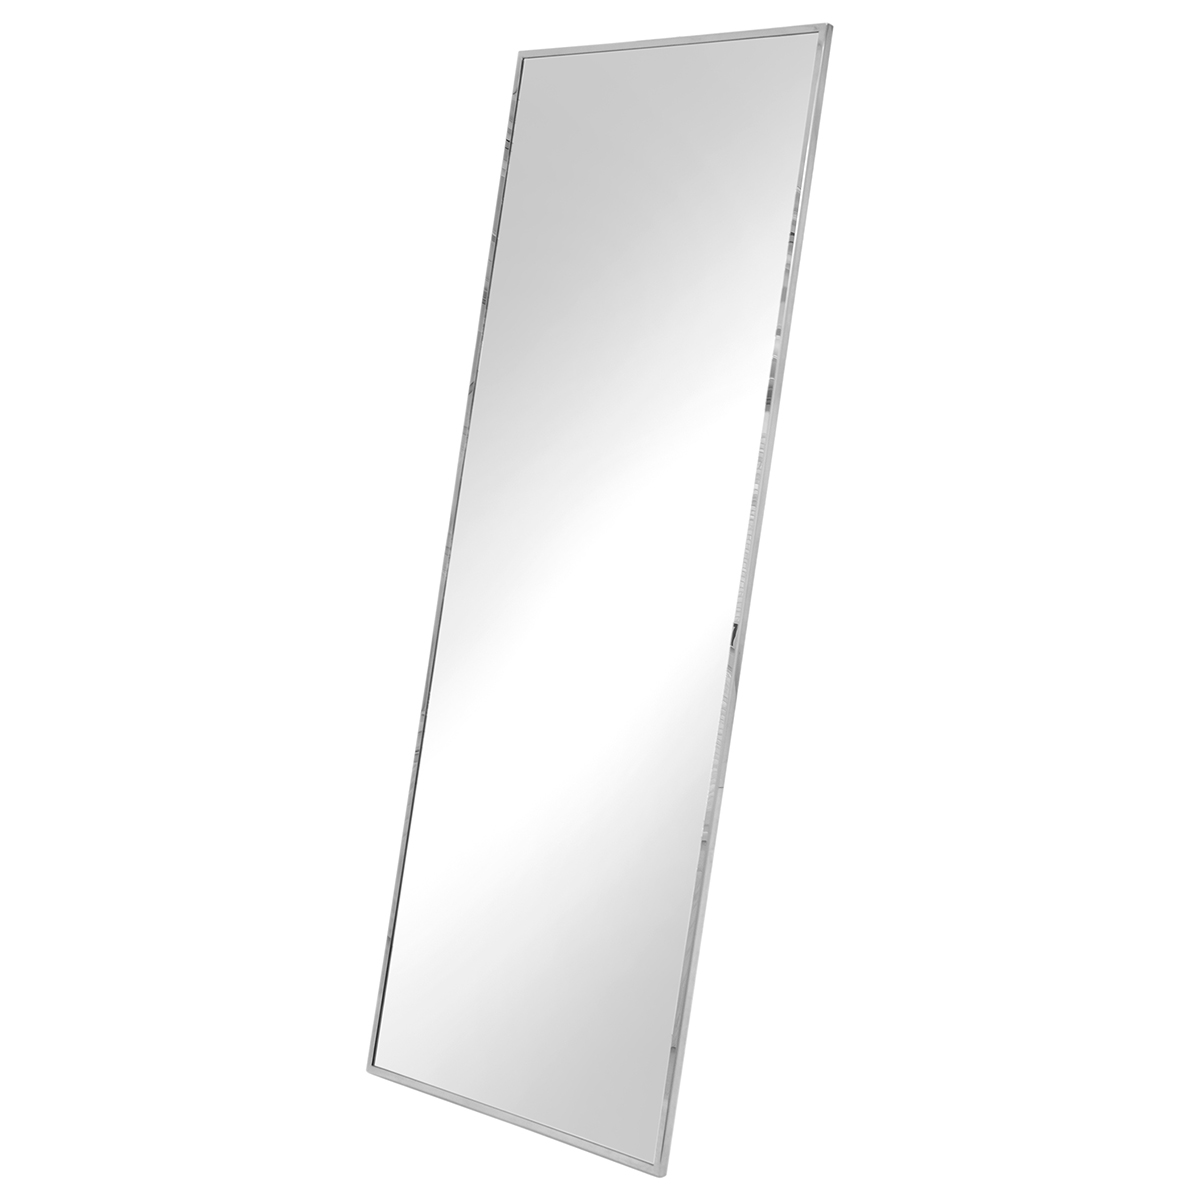 R & J Mirror – Rectangular 70 x 190 cm